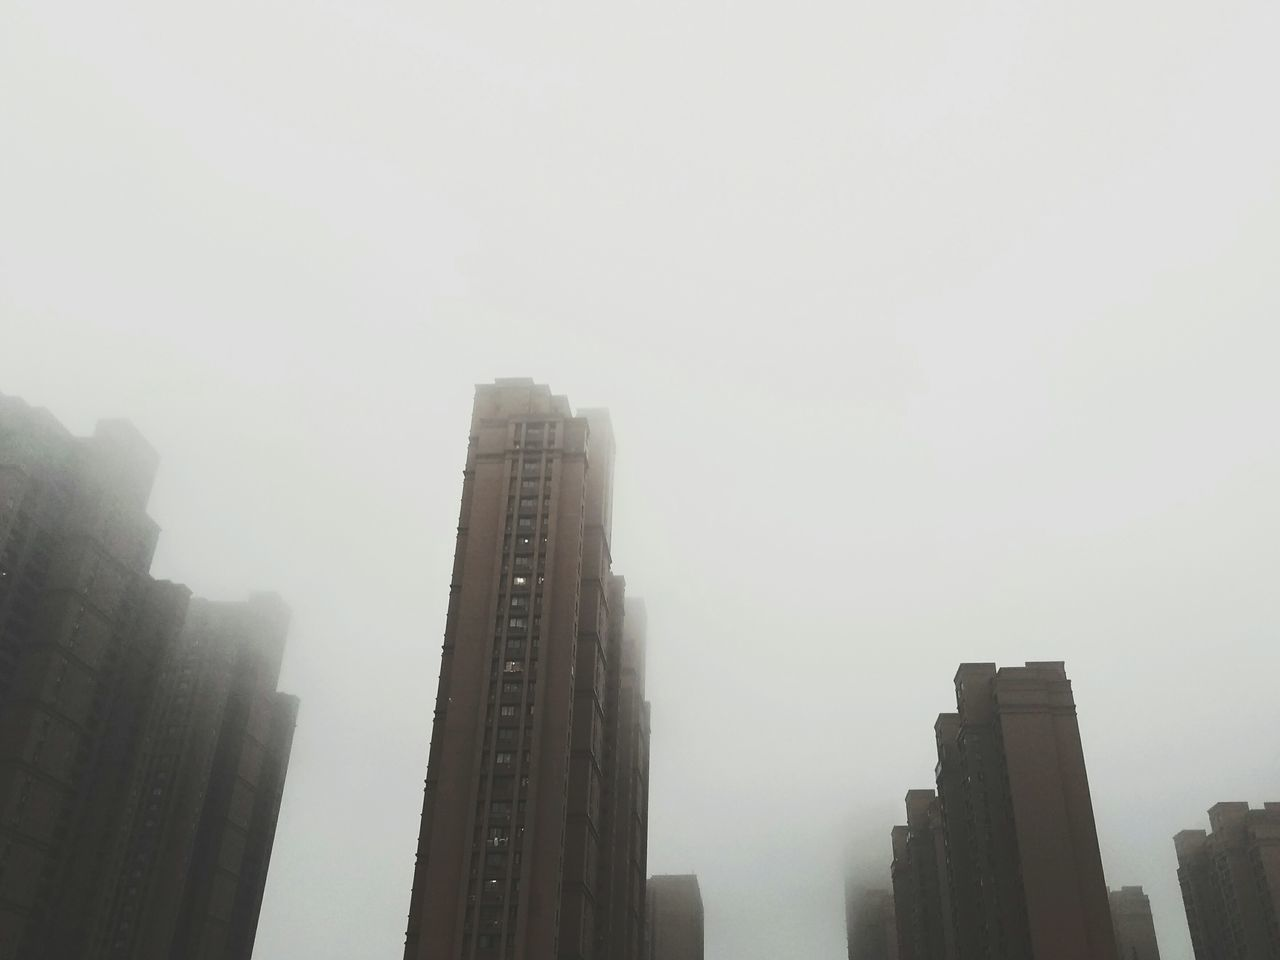 skyscraper, architecture, fog, city, building exterior, built structure, foggy, weather, modern, copy space, mist, no people, urban skyline, day, outdoors, low angle view, cityscape, downtown district, tall, sky, nature